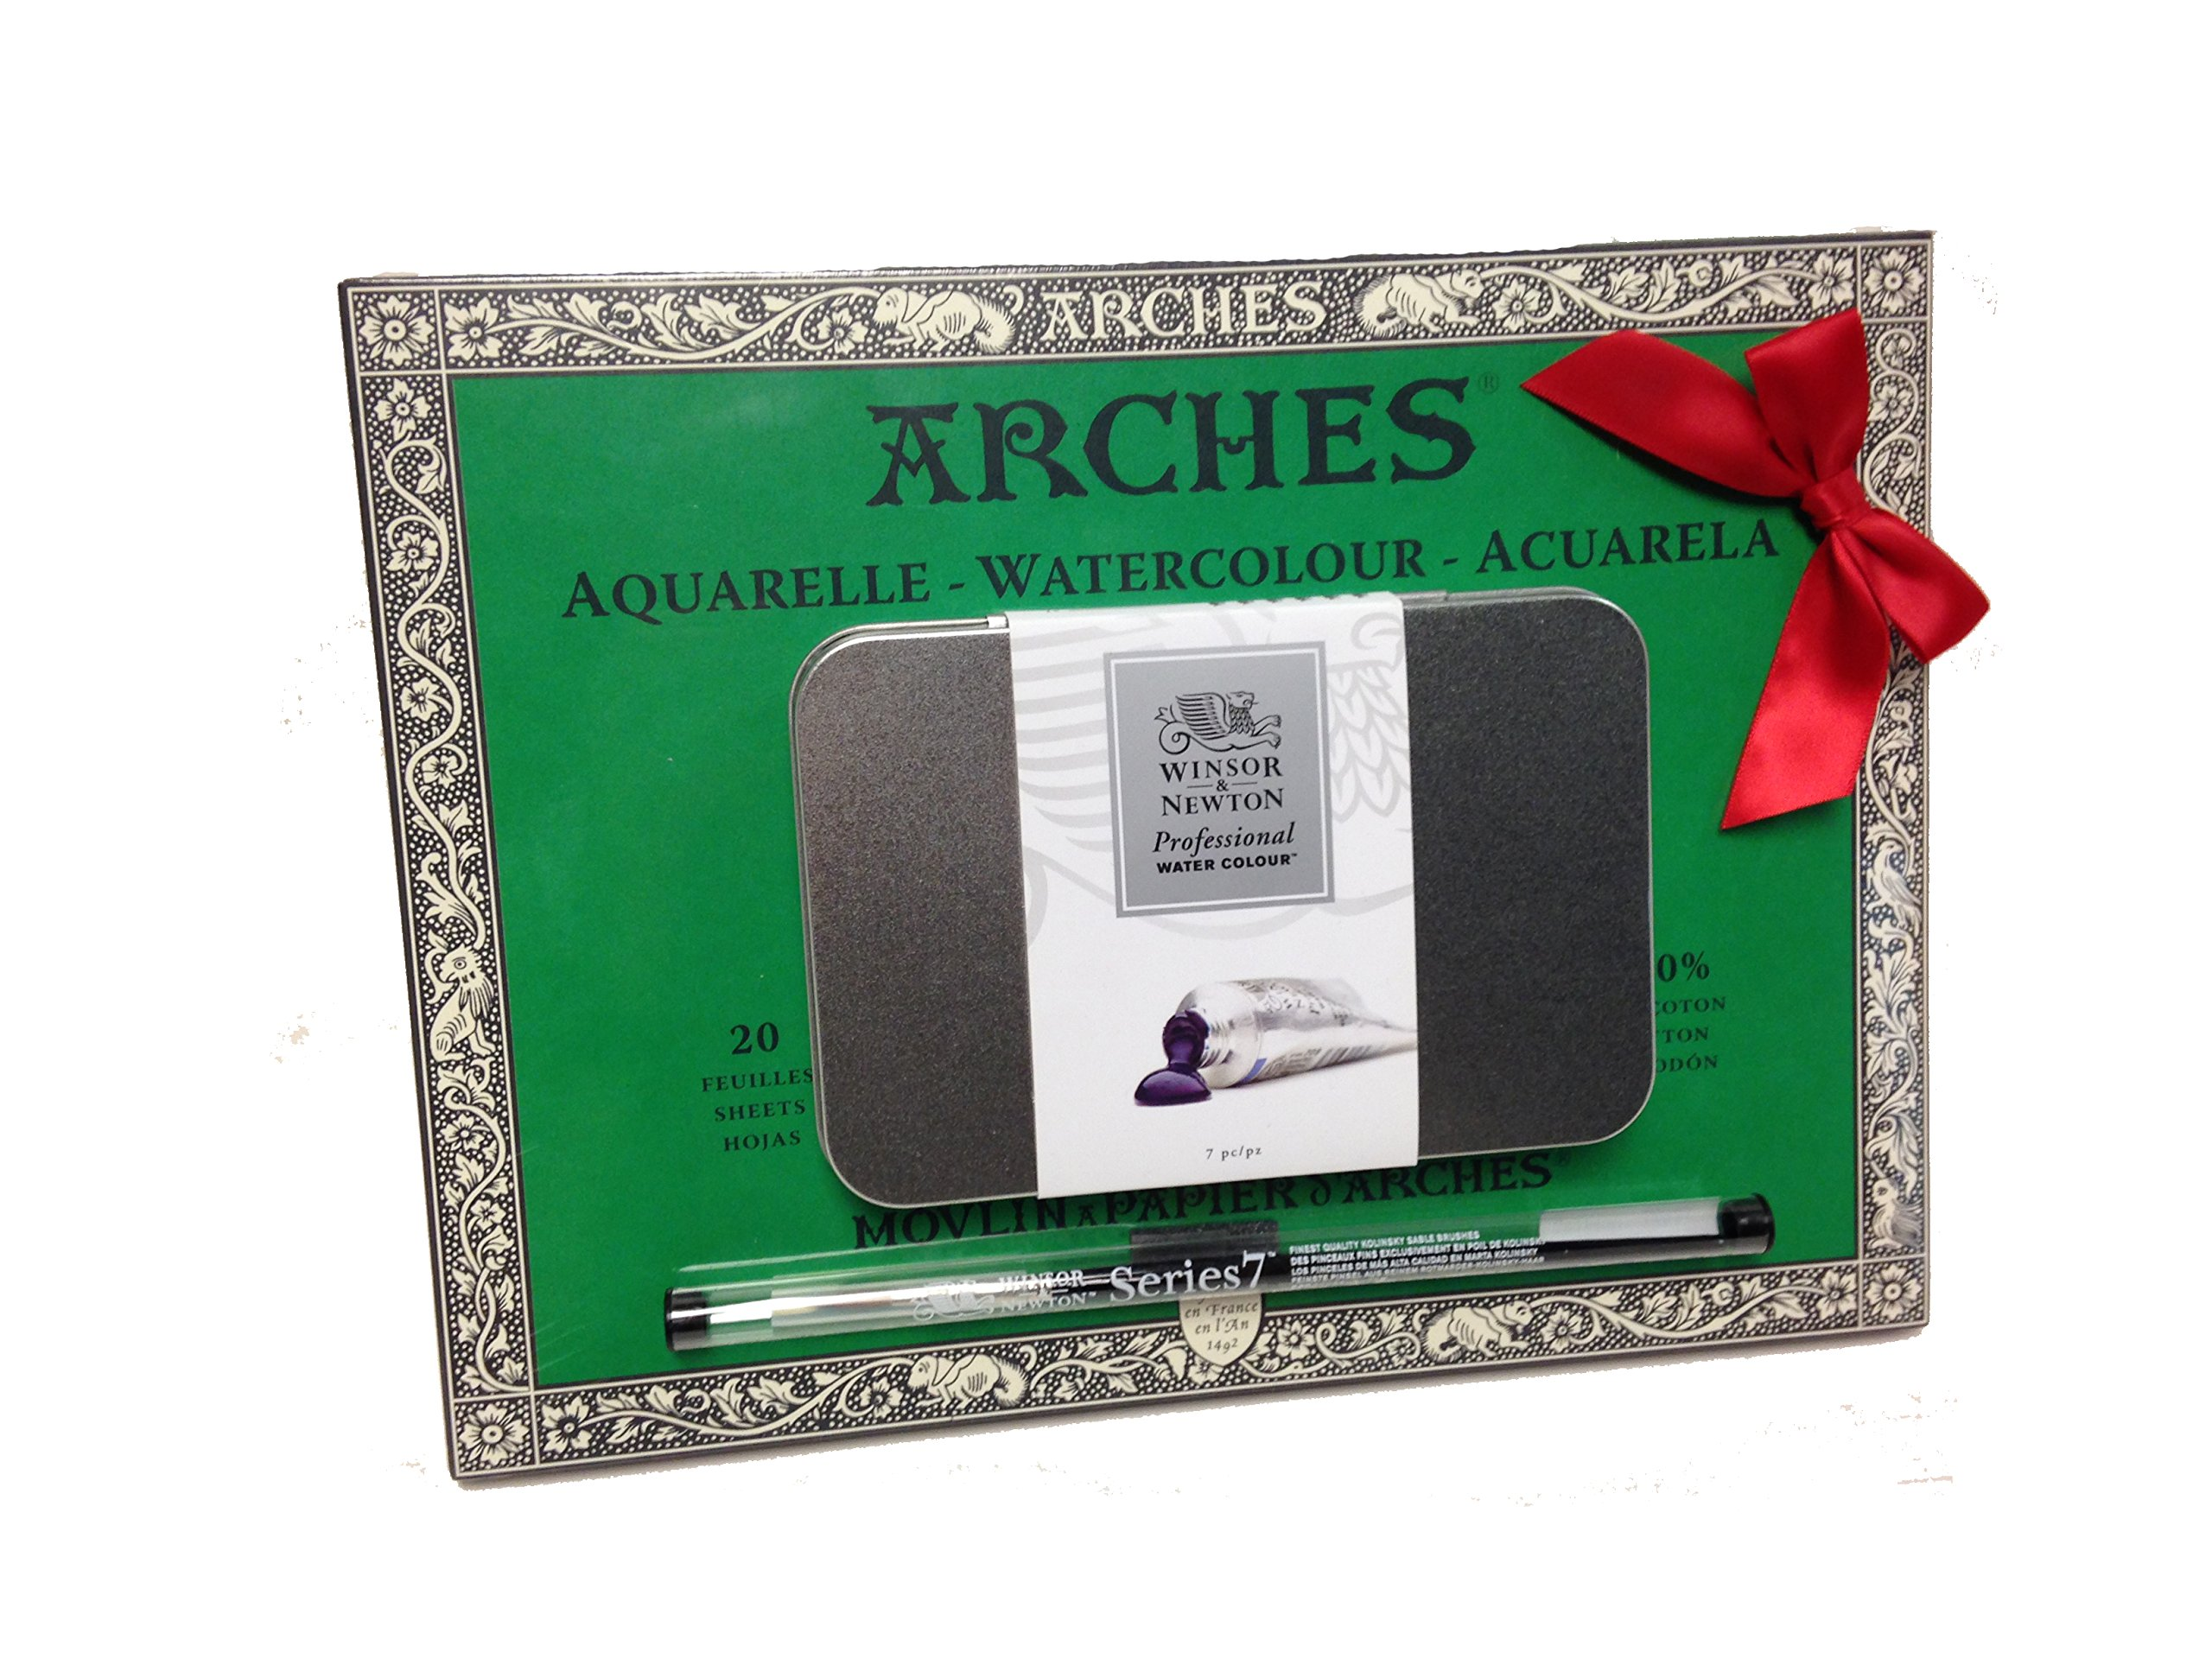 Winsor & Newton Arches Professional Water Colour Gift Set